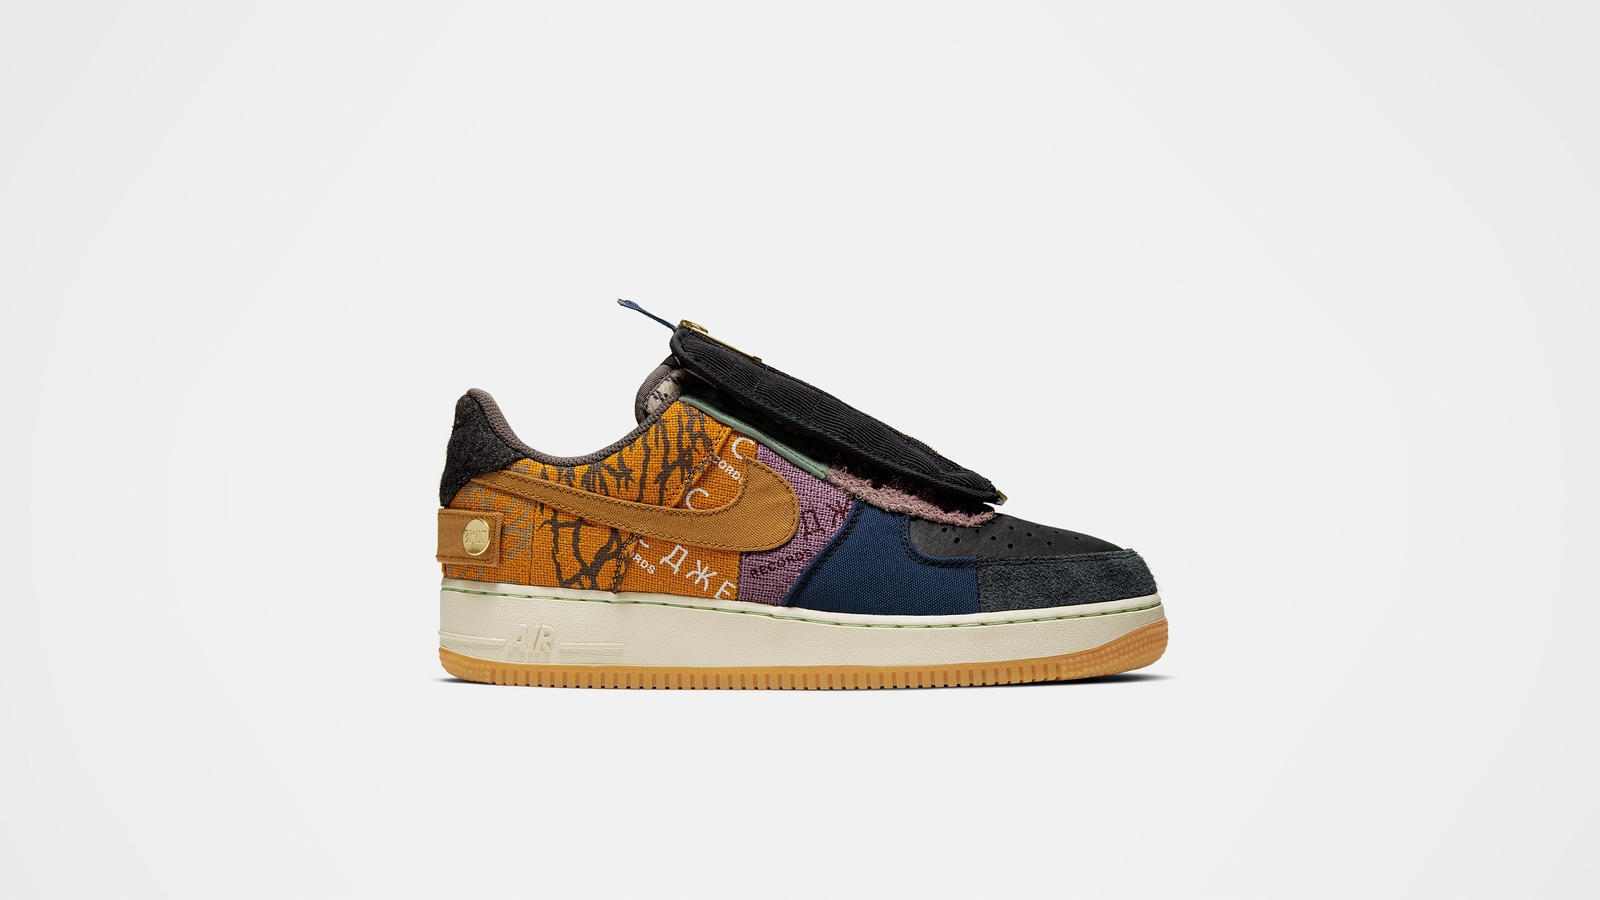 Travis Scott x Nike Air Force 1 Low Cactus Jack Lateral side